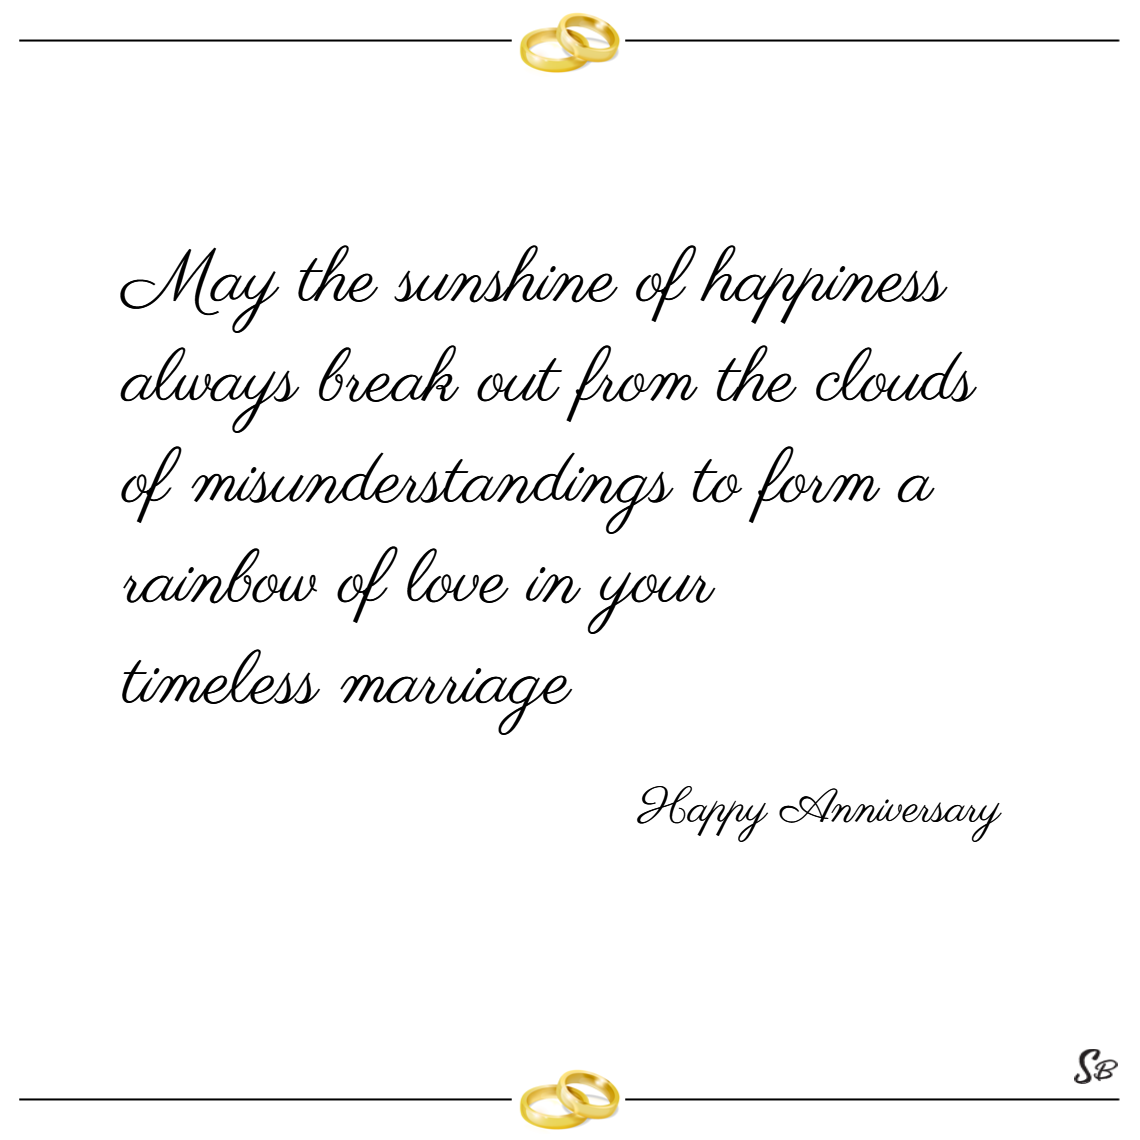 May the sunshine of happiness always break out from the clouds of misunderstandings to form a rainbow of love in your timeless marriage